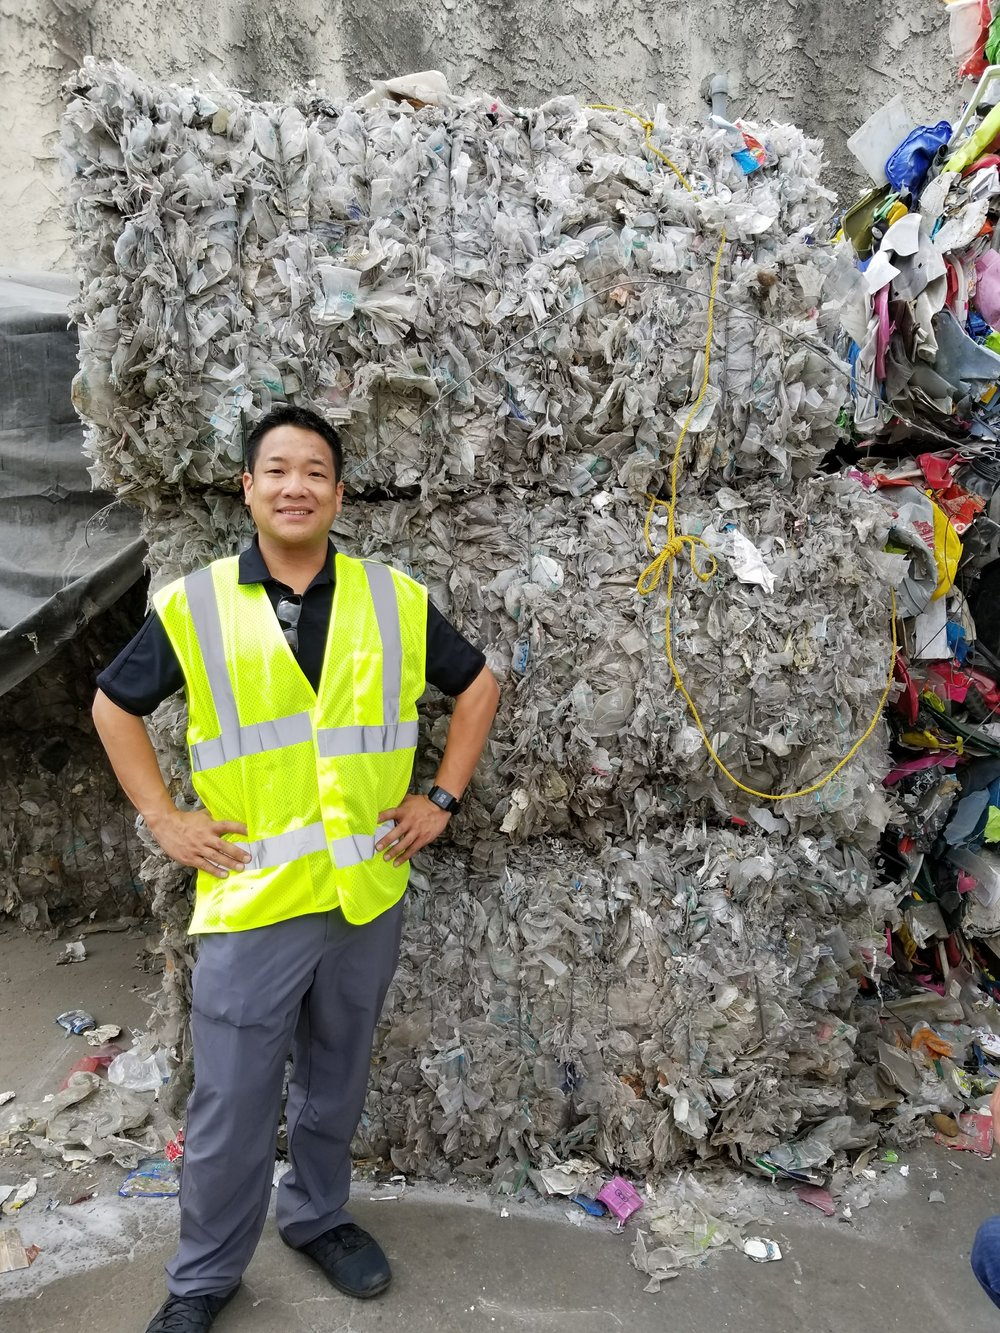 CEO, Brian Chung, touring waste processing facility